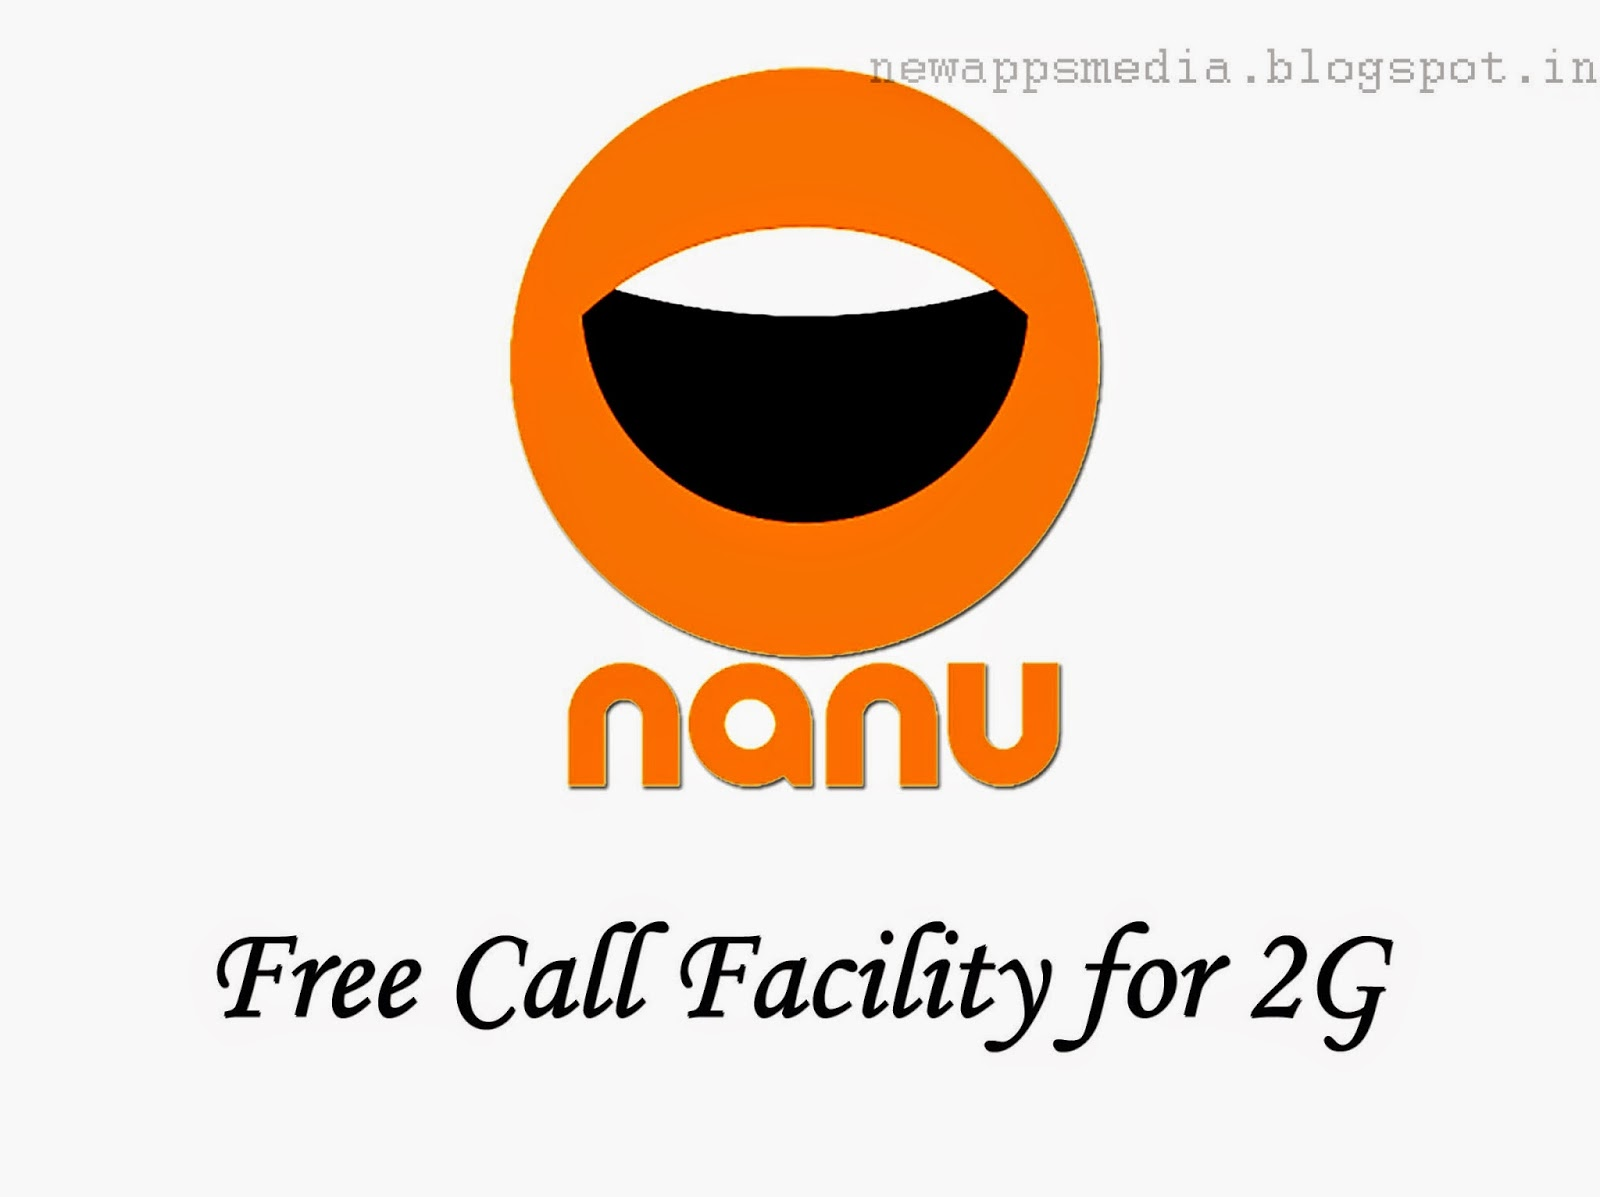 nanu app, android free call app nanu, free call facility for 2G networks, nanu free call app, 2G free call app for android, 2G free call app, nanu free call app, latest android free call app